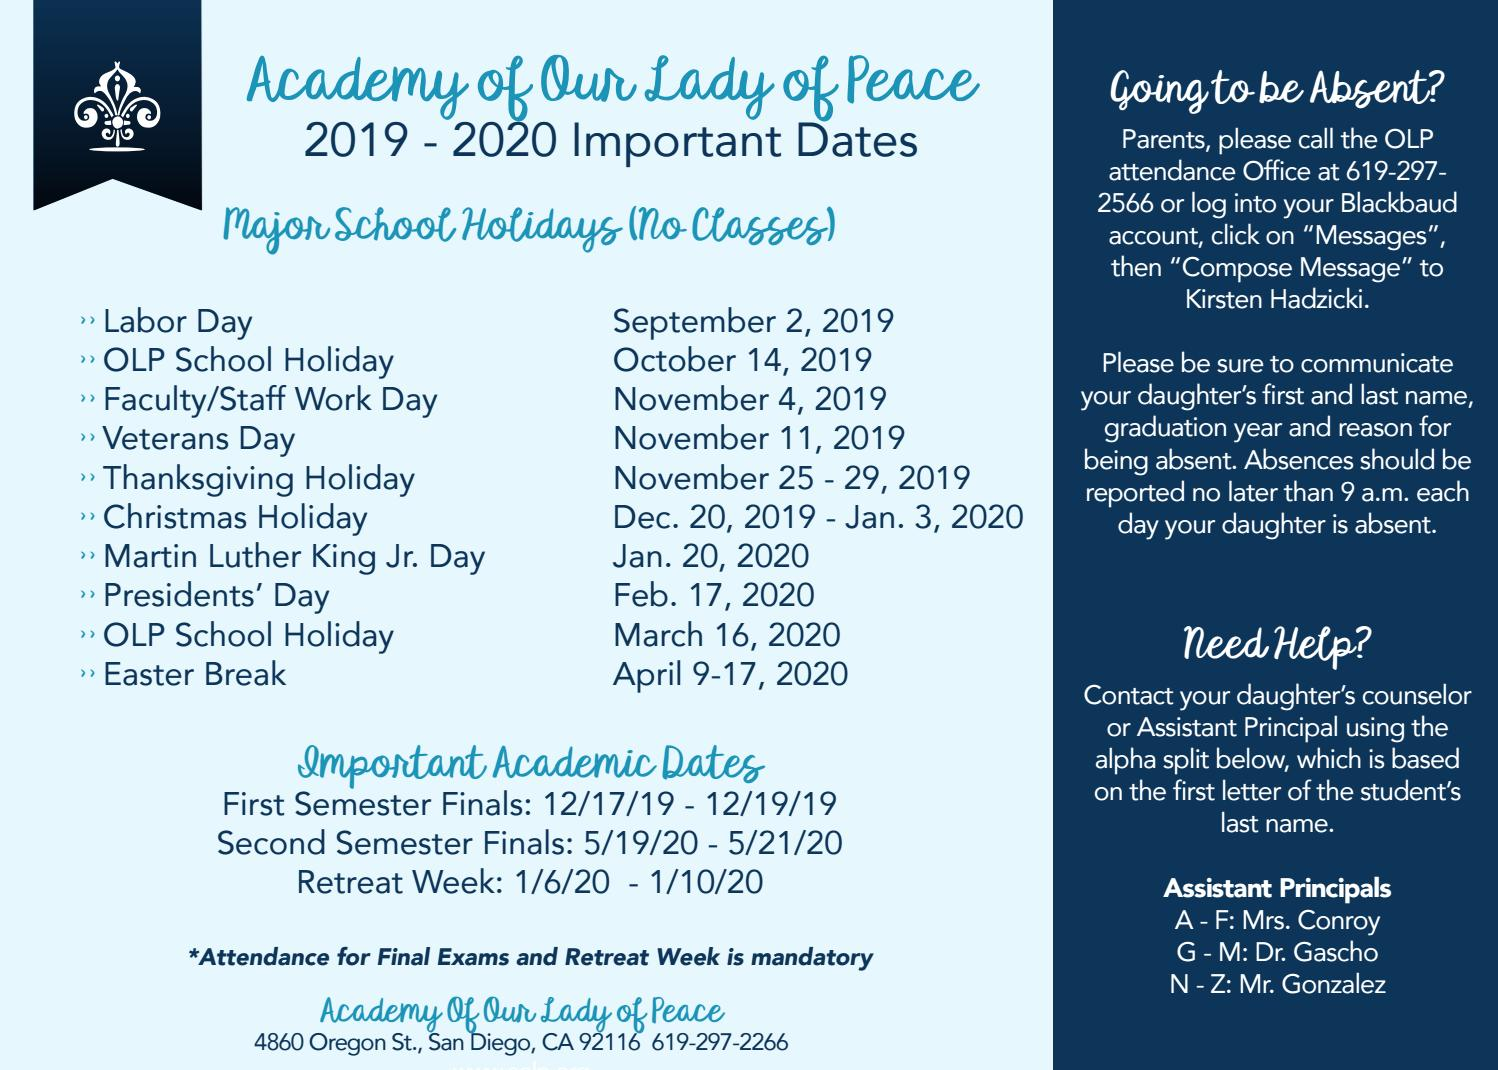 2019-20 Important Dates for Parents by Academy of Our Lady